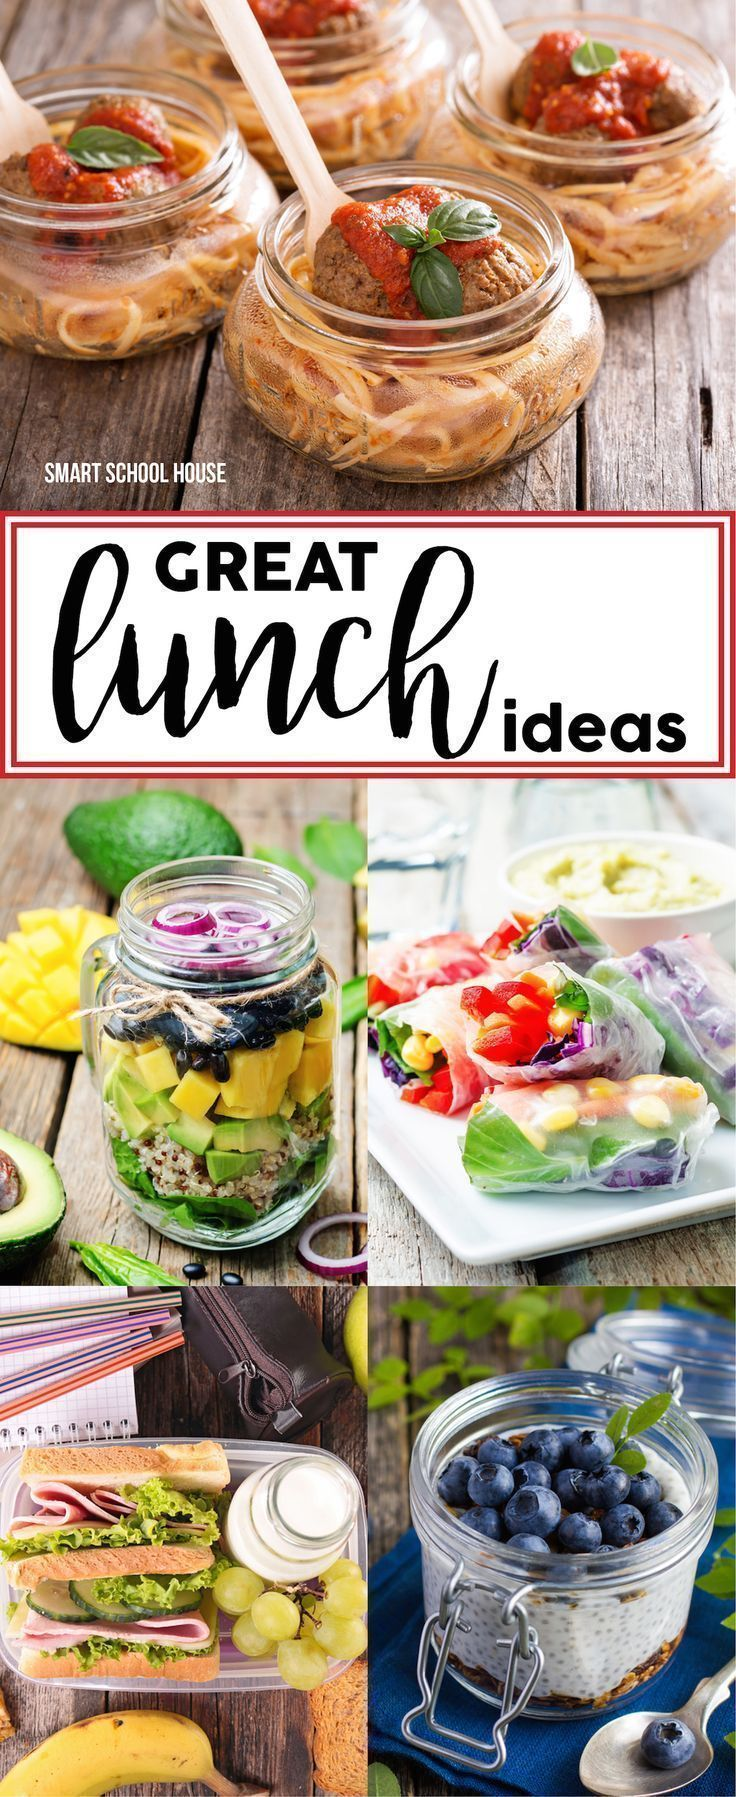 Great lunch ideas office lunch ideas lunches and easy easy healthy office lunch ideas forumfinder Gallery